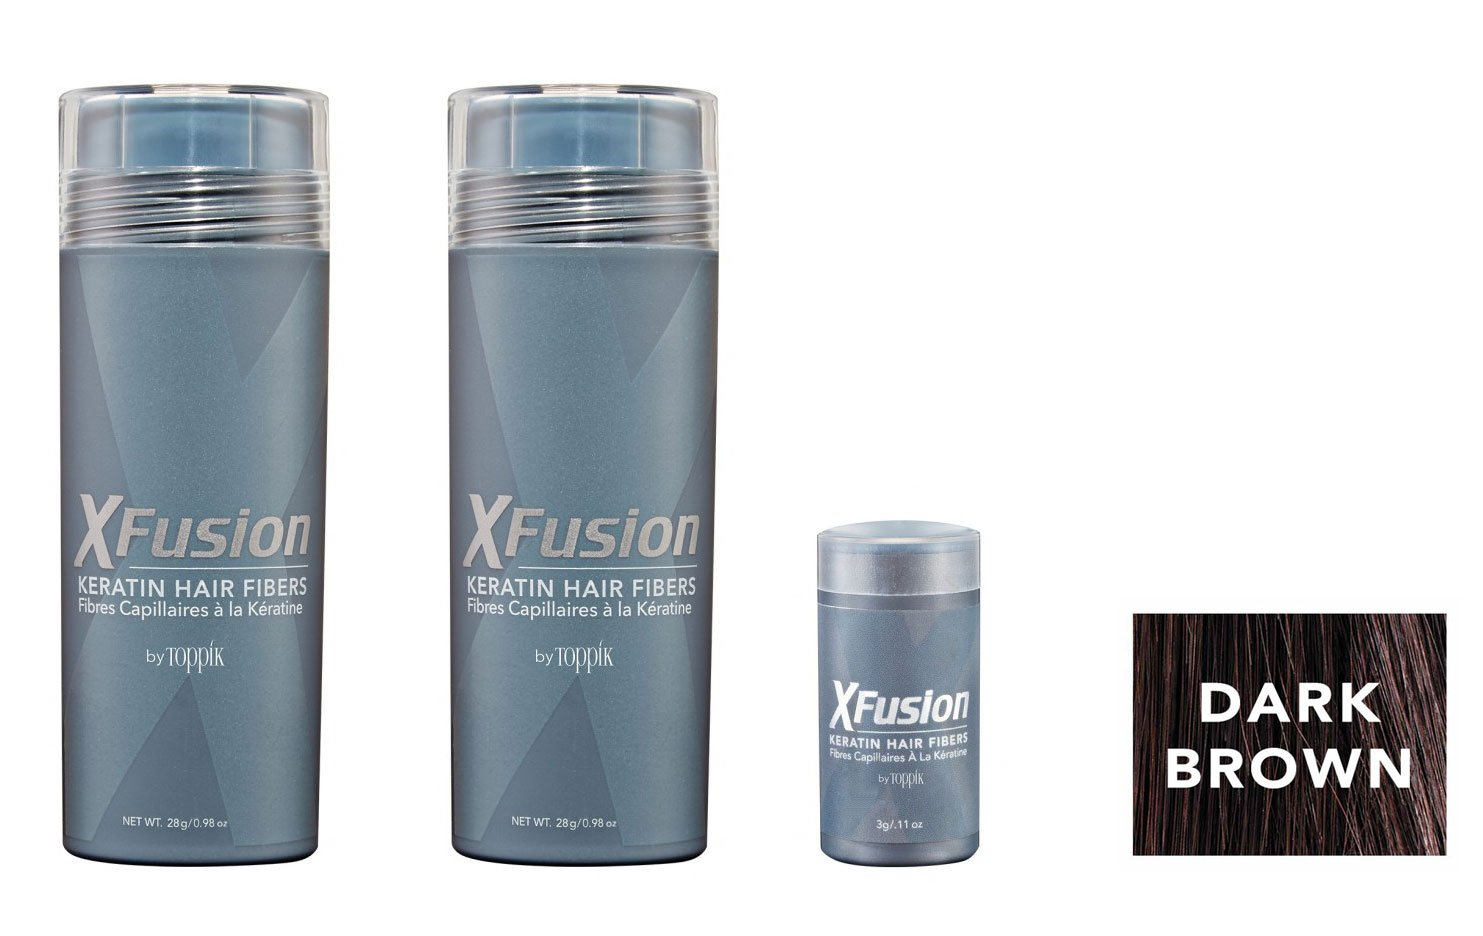 XFusion Keratin Hair Fibers,Two Pack Value 2 x 28 gr/0.98 oz DARK BROWN/FREE Refillable 3 gr Travel Size Fibers ($8.00 Value) …